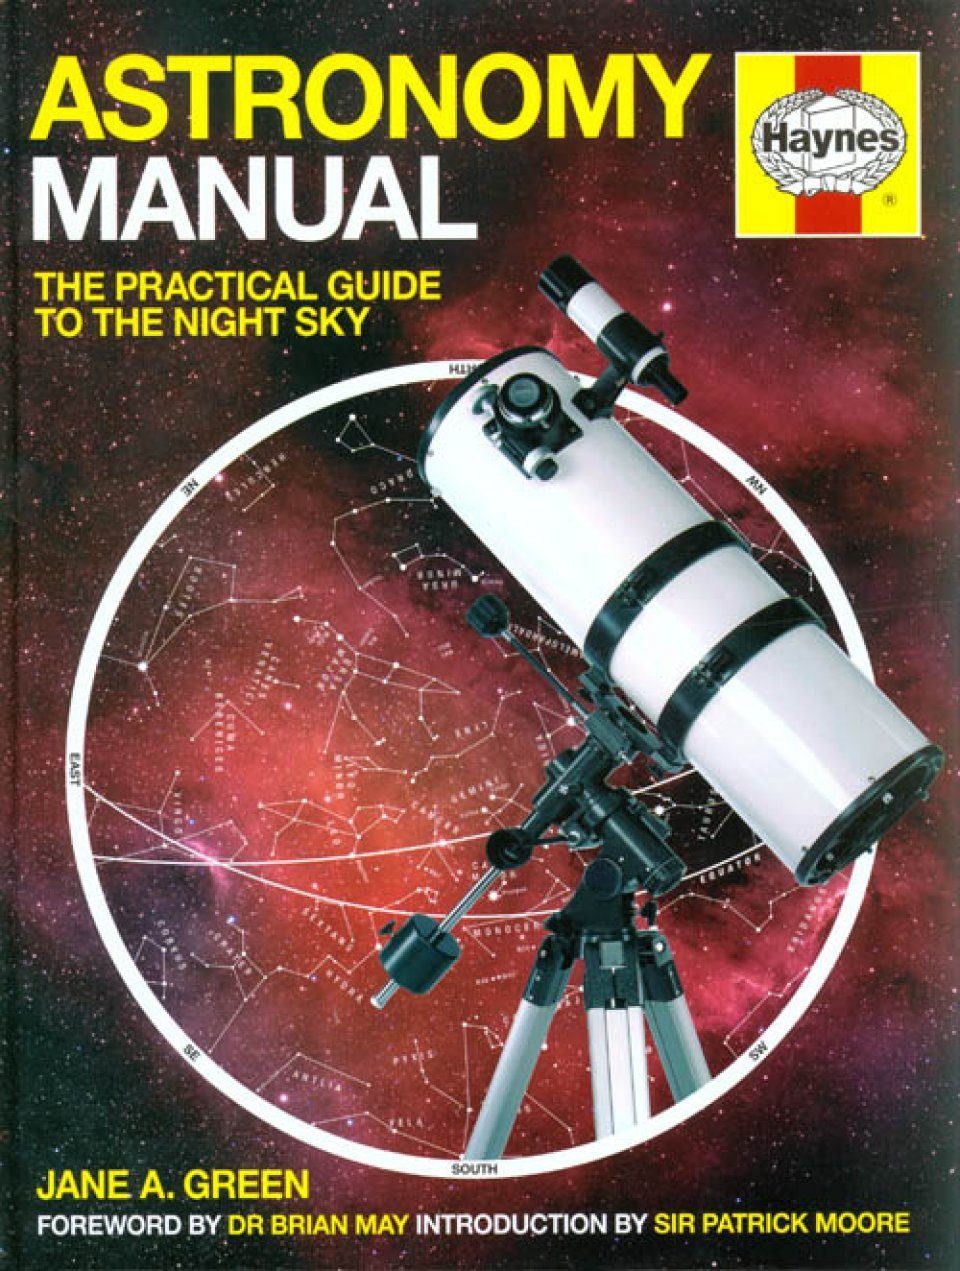 Gilded Astronomy Manual Guide